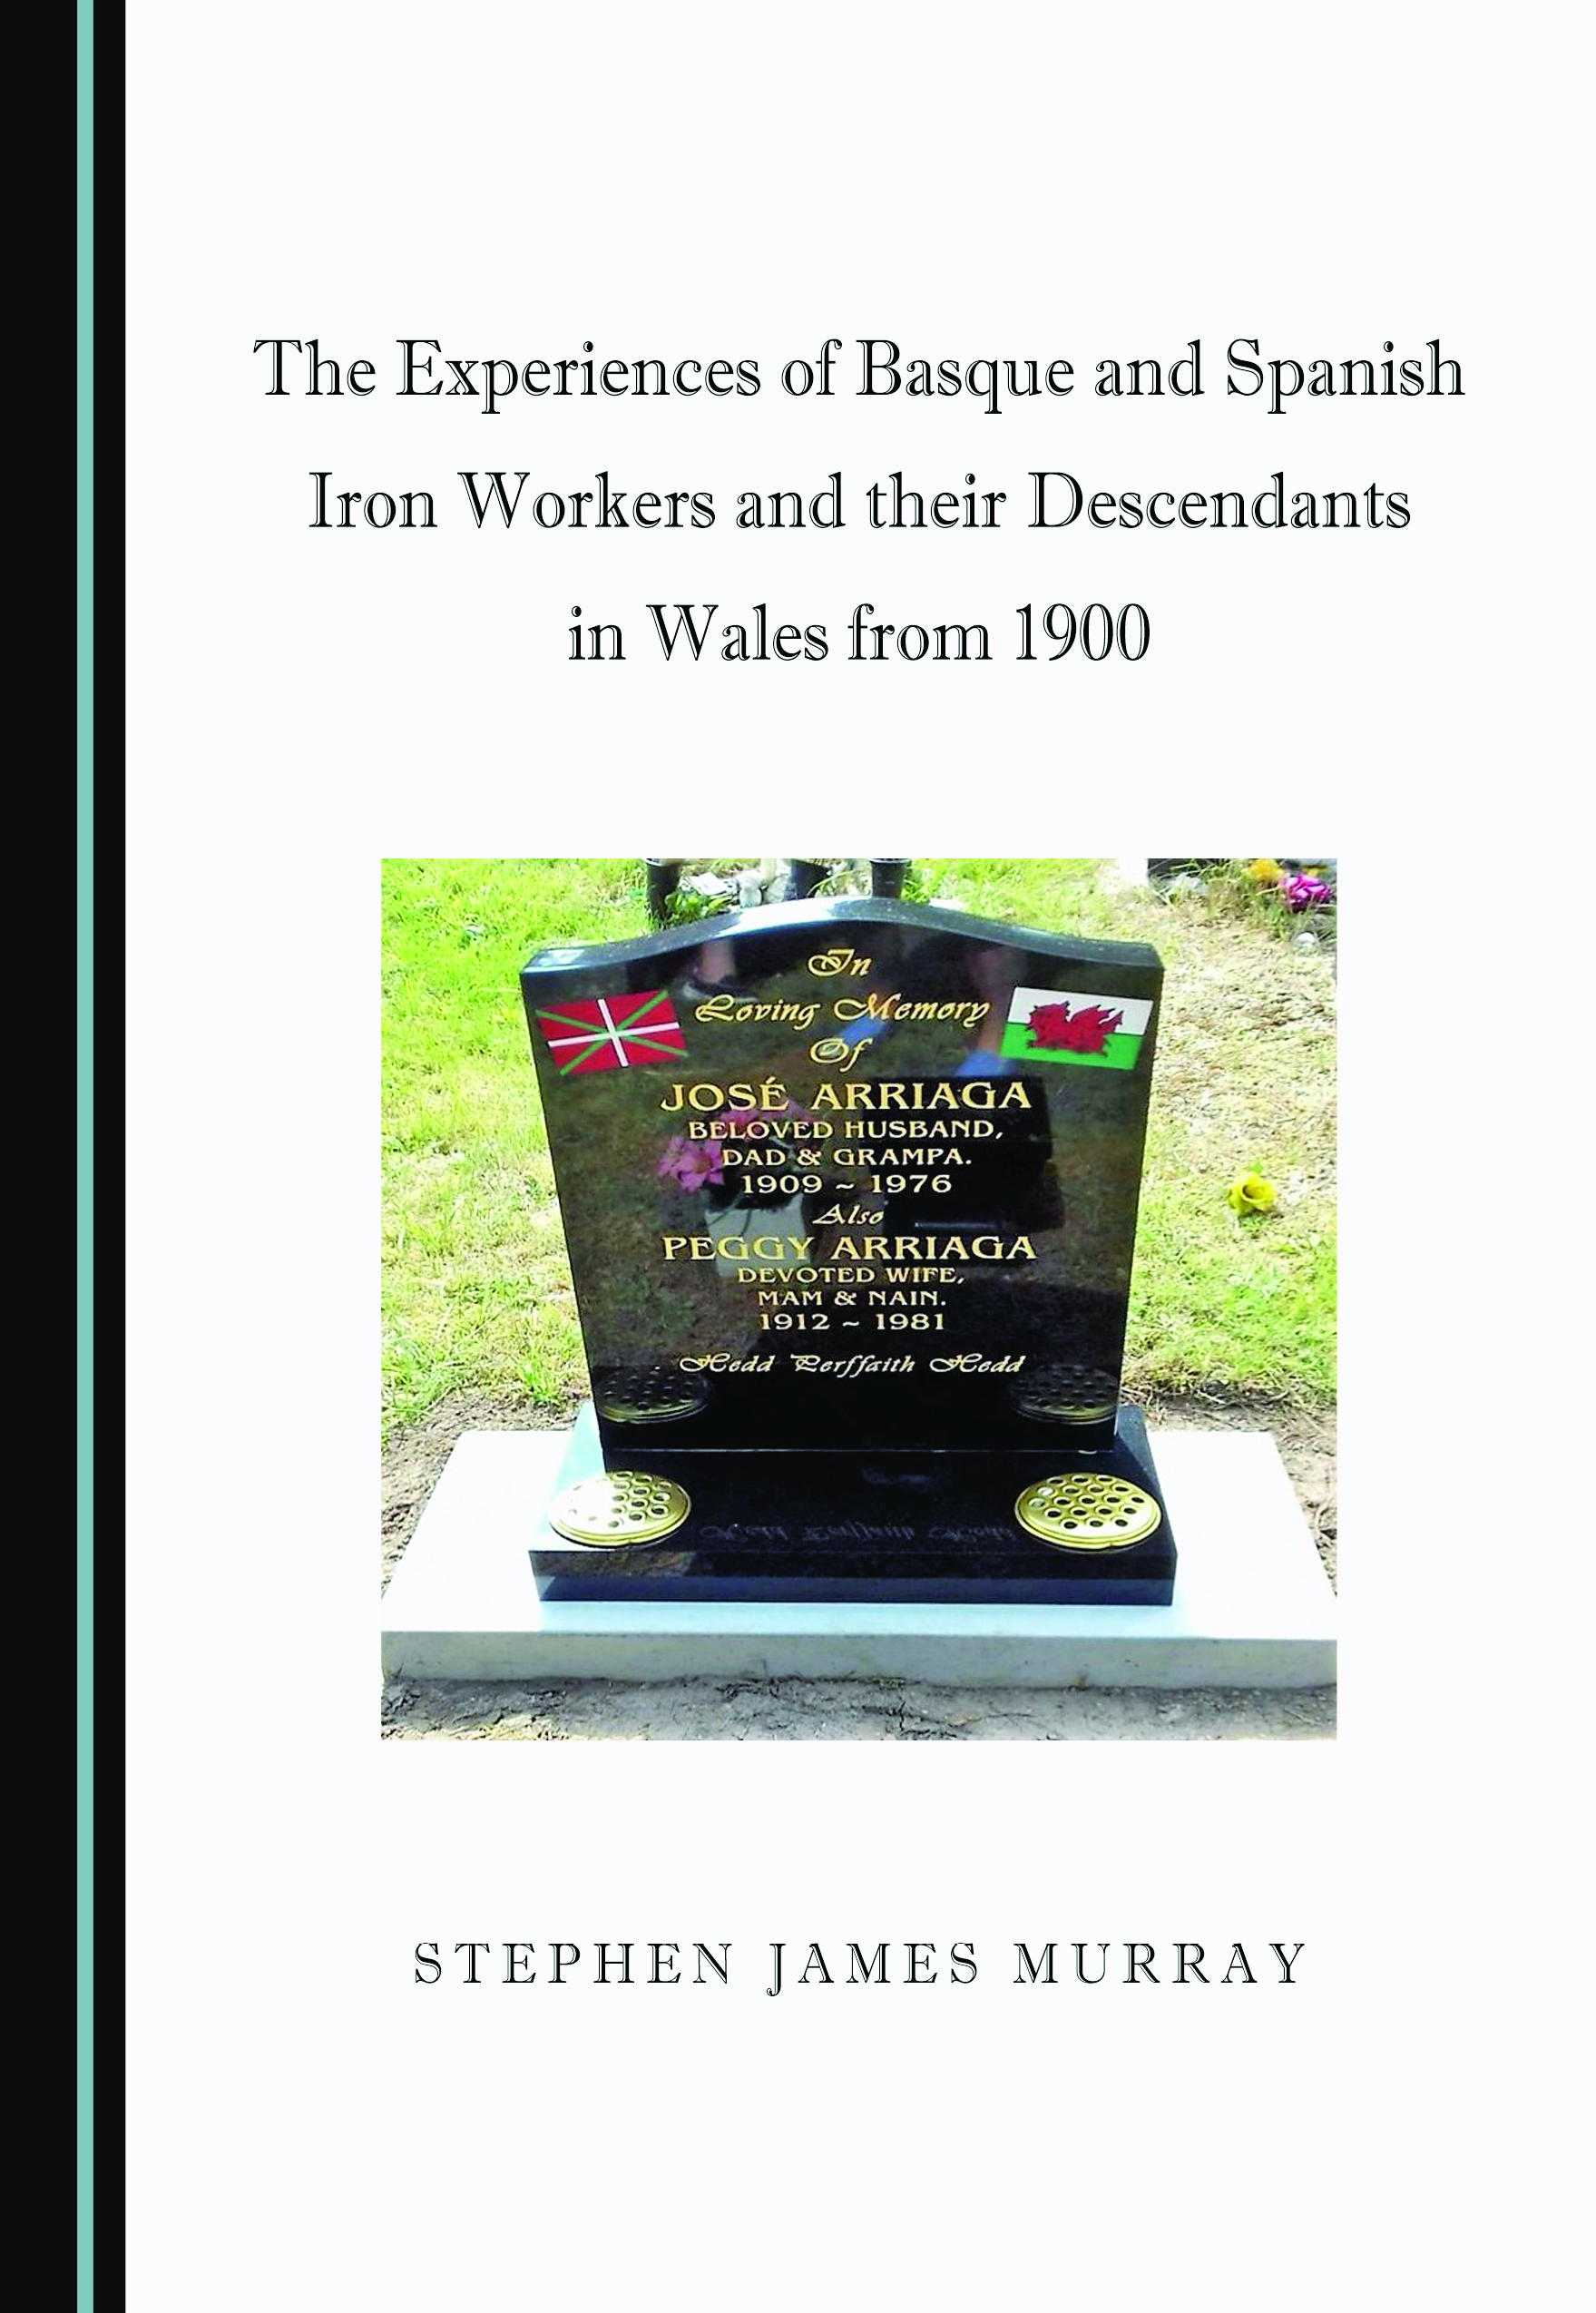 The Experiences of Basque and Spanish Iron Workers and their Descendants in Wales from 1900